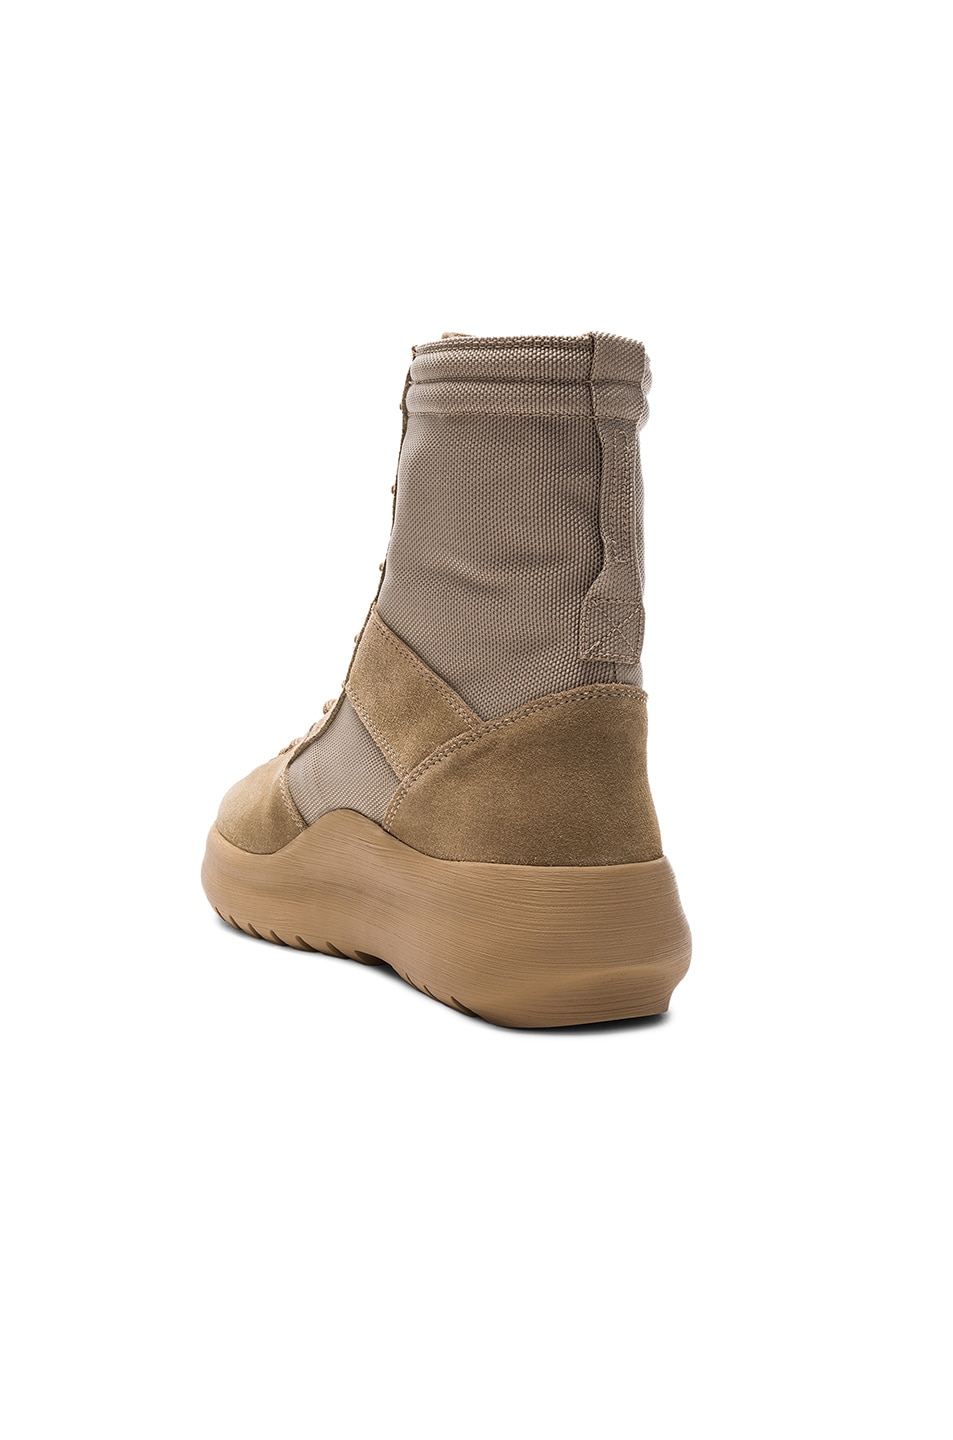 f581bfc561fdf Image 3 of YEEZY Season 3 Military Boots in Rock